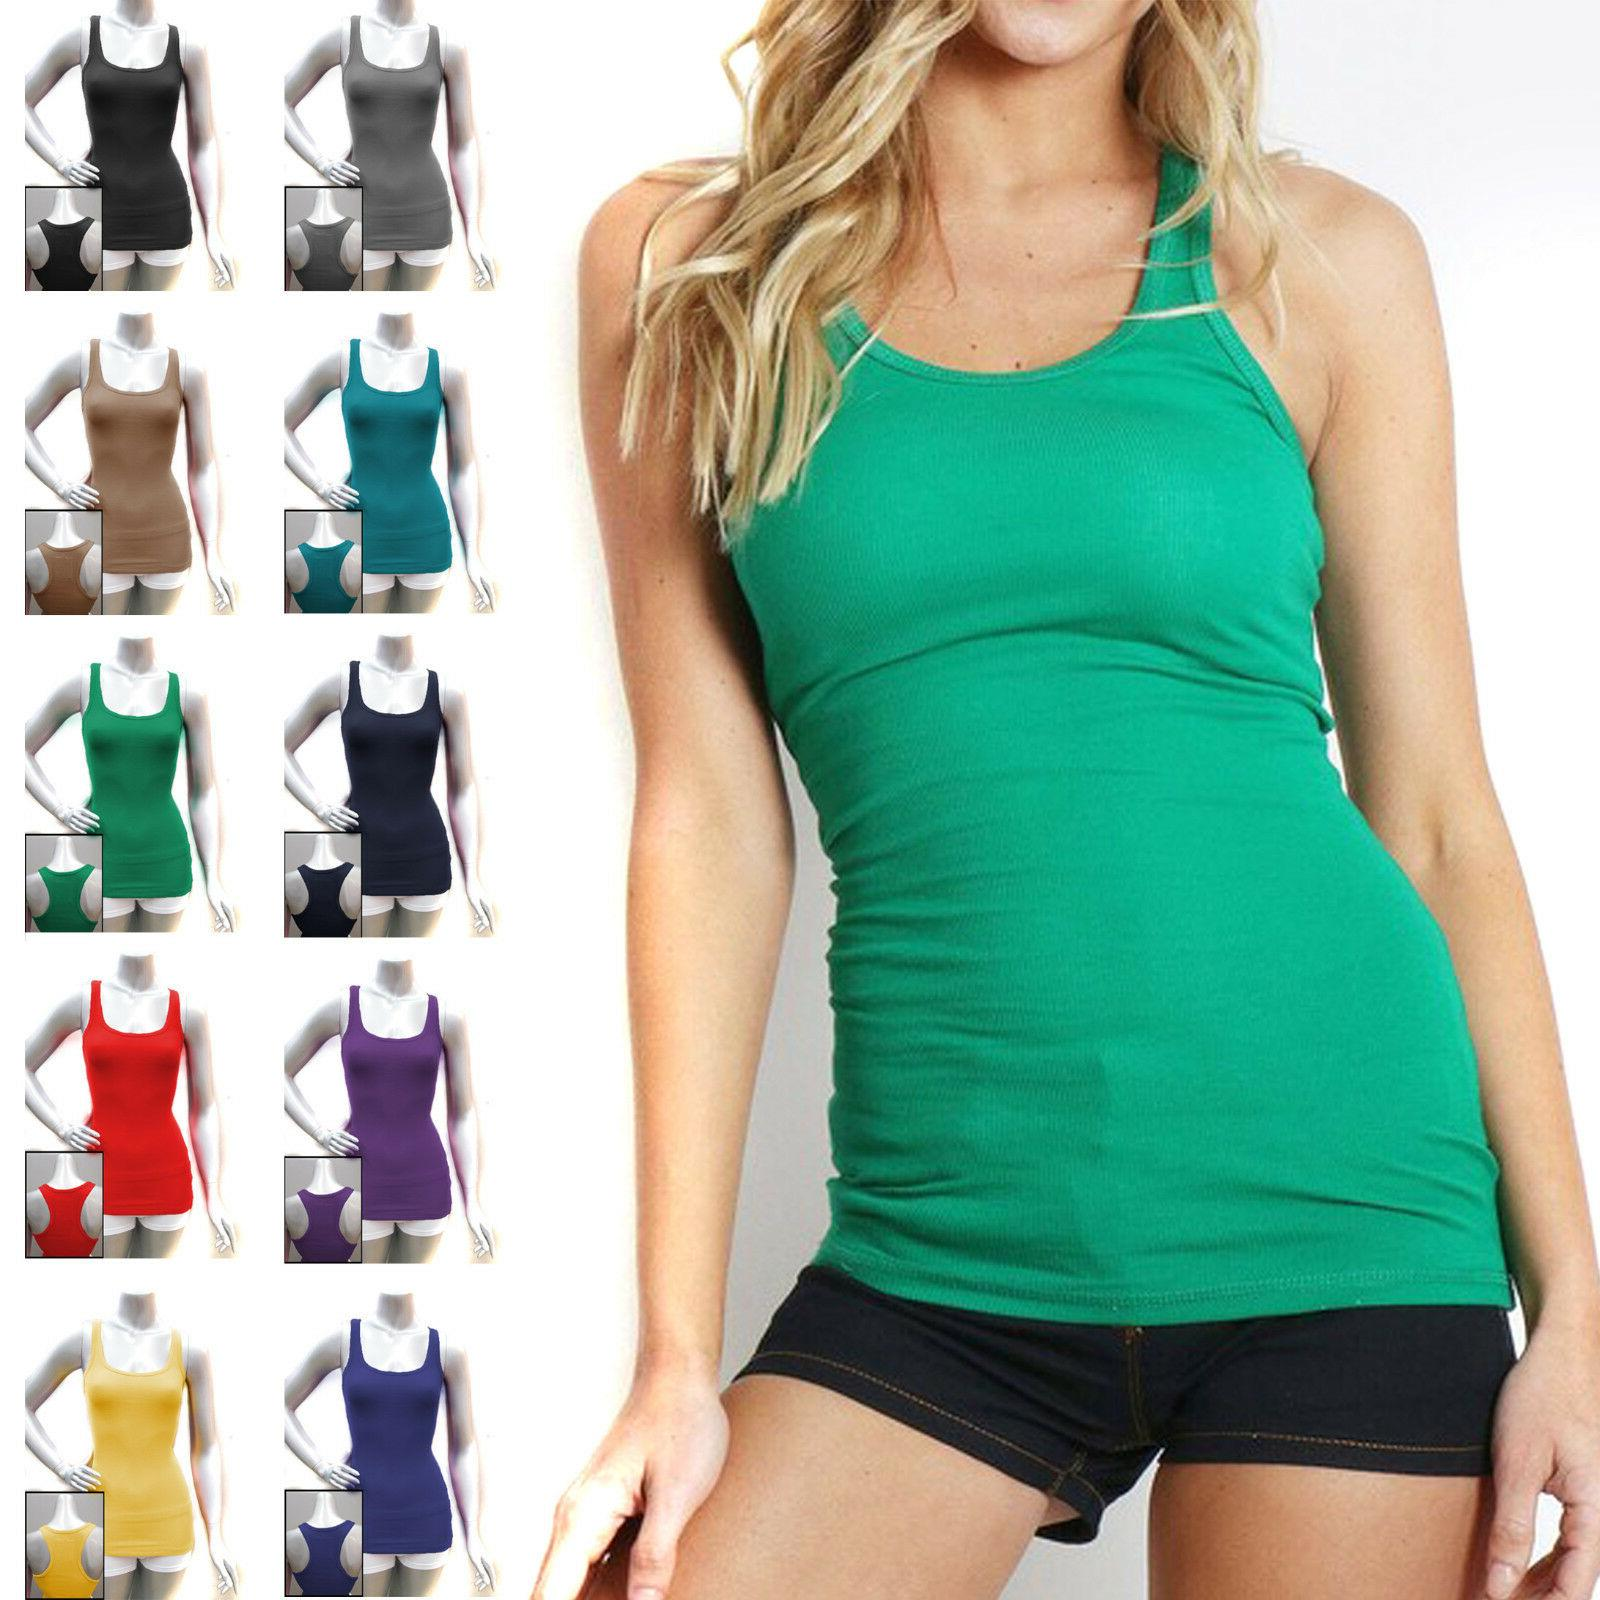 cotton ribbed racerback tank top womens fitness